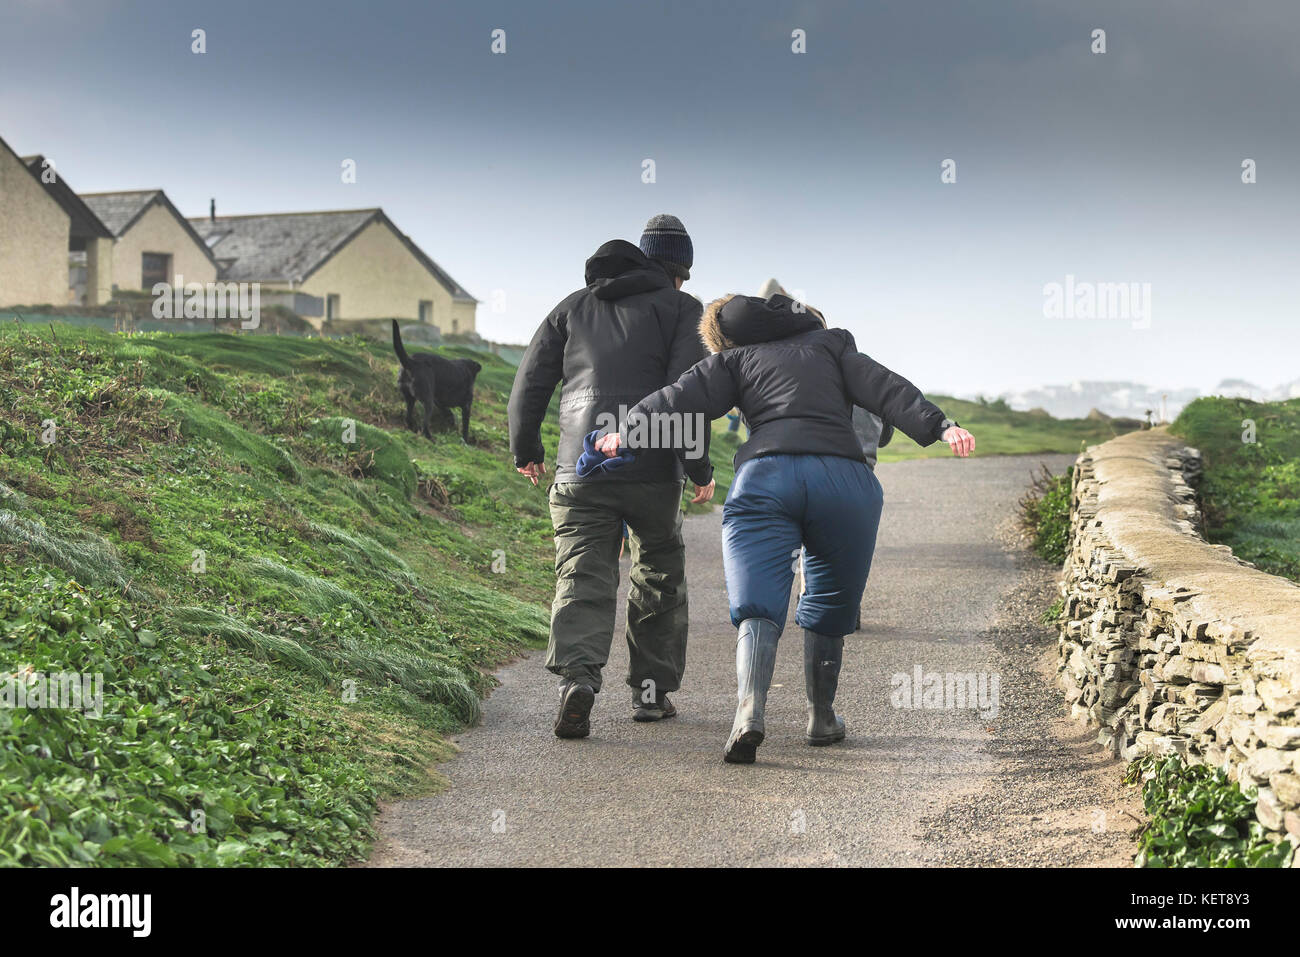 UK Weather Storm Brian - a couple walking into stormforce winds as Storm Brian brings wild weather to the North - Stock Image